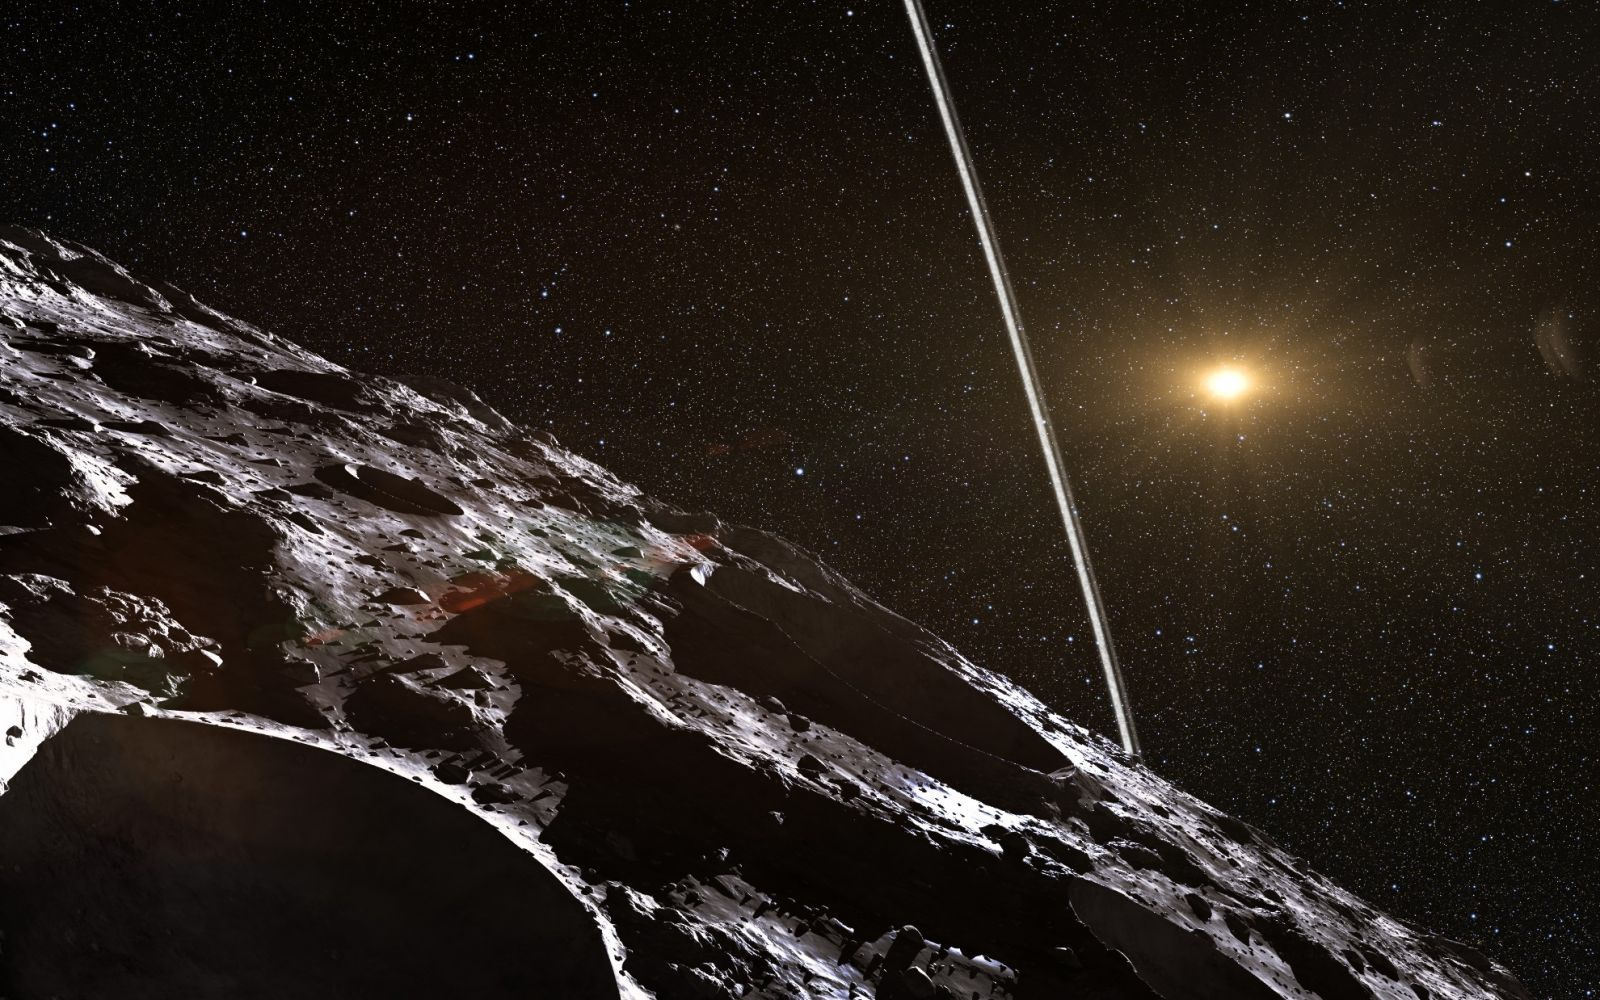 Artist's depiction of Chiron, the largest known centaur, surrounded by a ring. Image Credit: European Southern Observatory